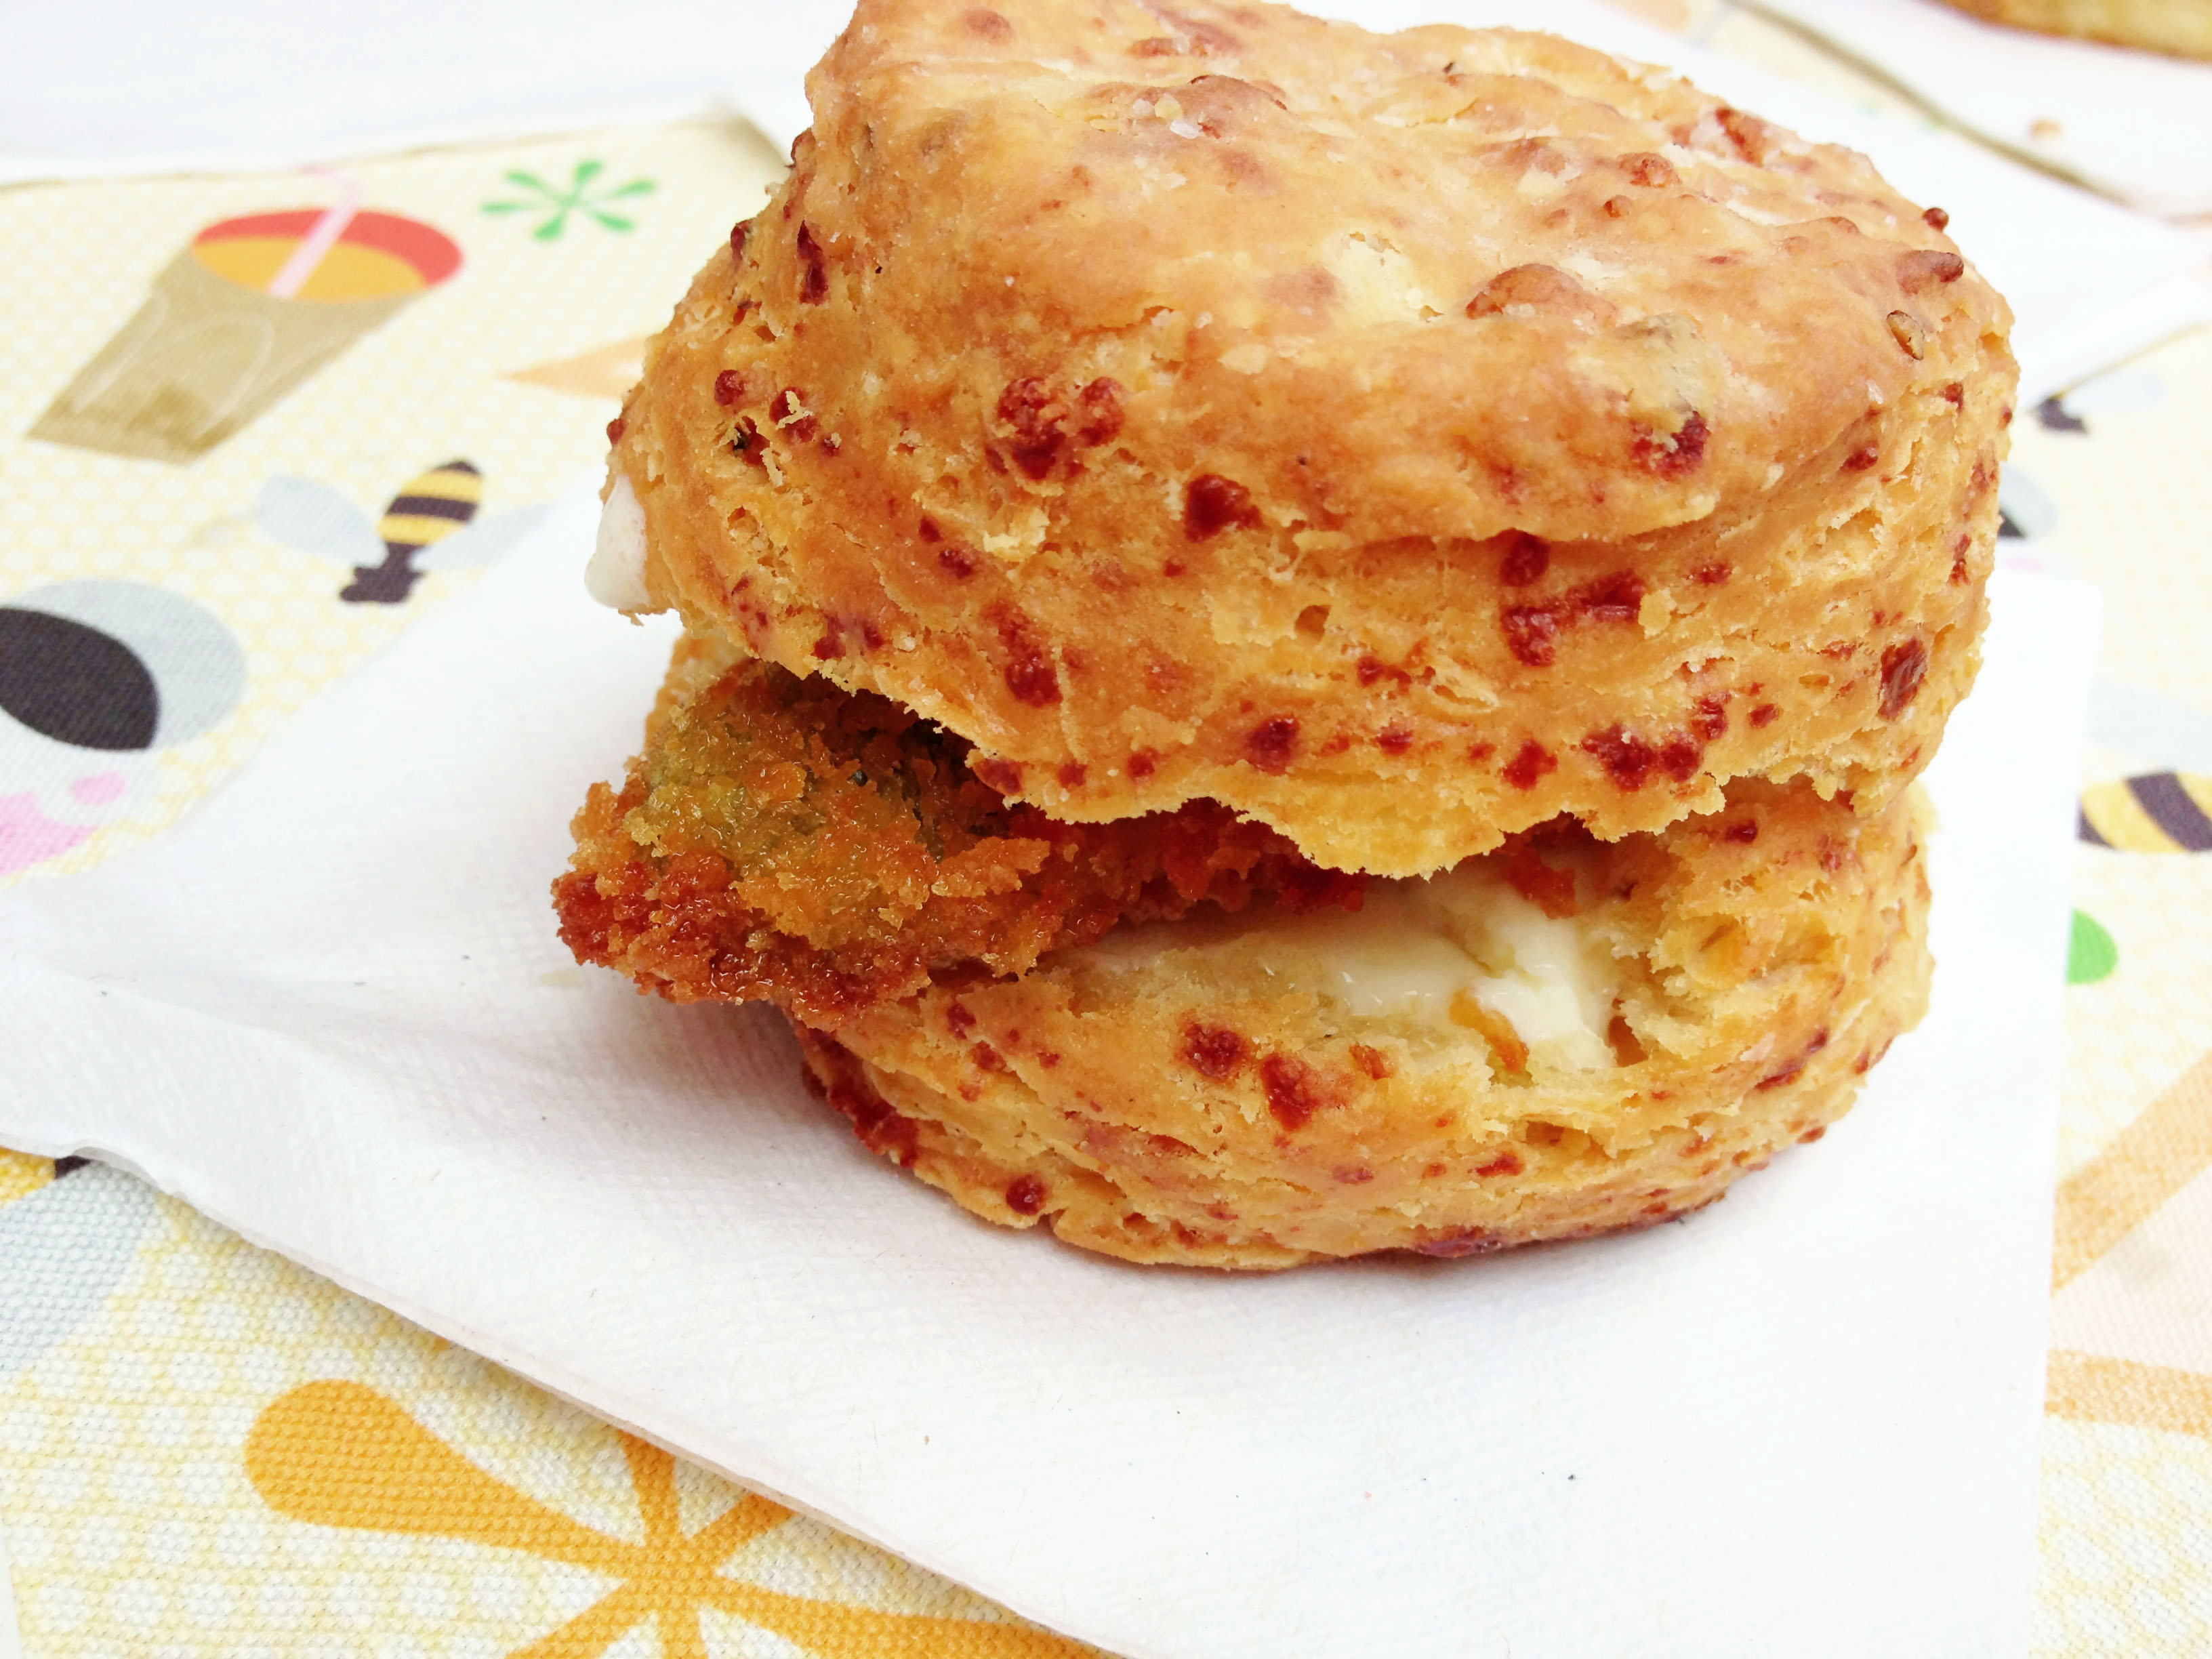 A mind-blowing combination of spicy pimento cheese dough, buttered and sandwiched with fried jalepeno